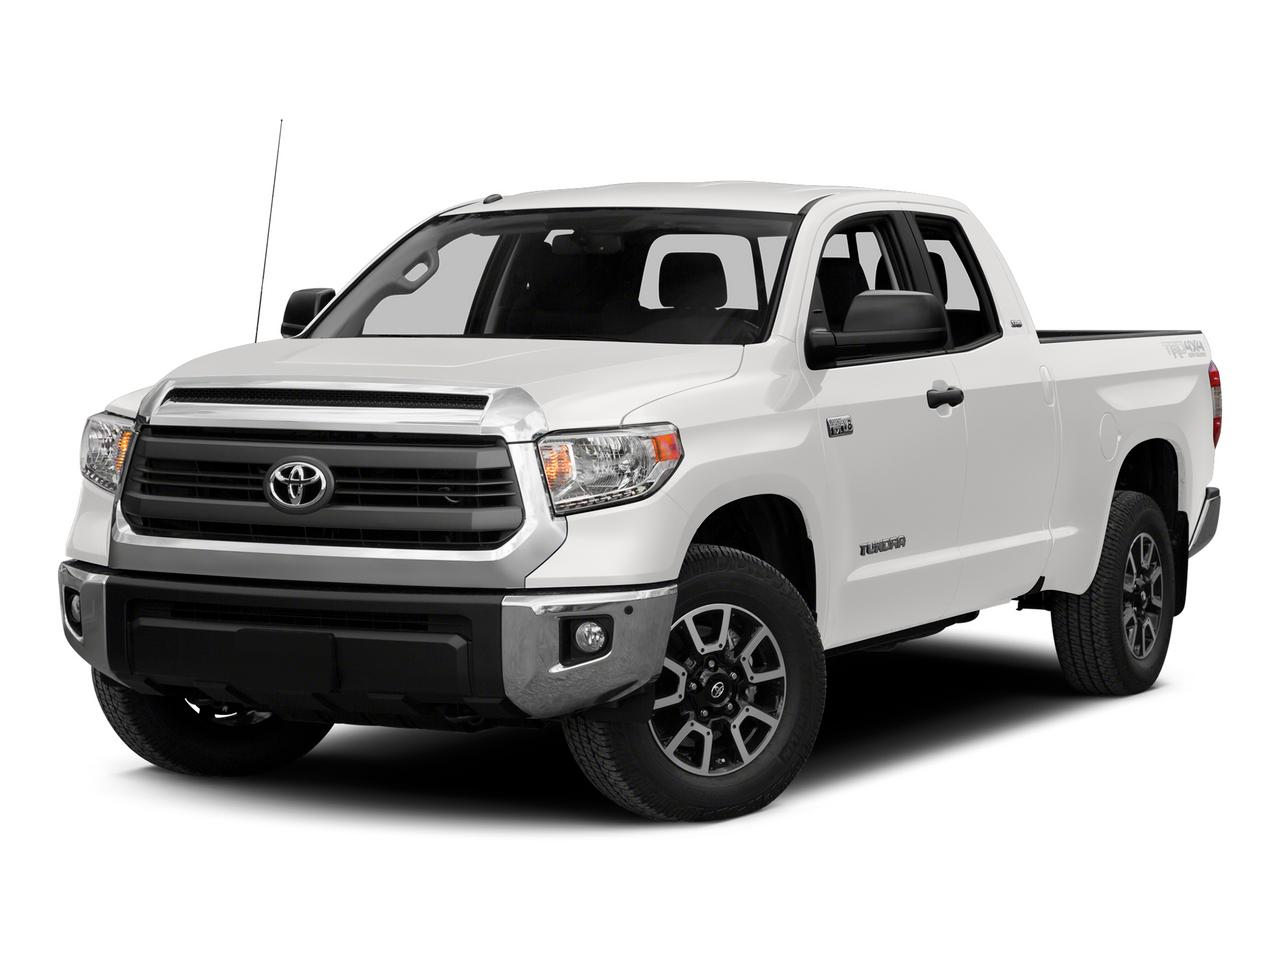 2015 Toyota Tundra 2WD Truck Vehicle Photo in San Antonio, TX 78238